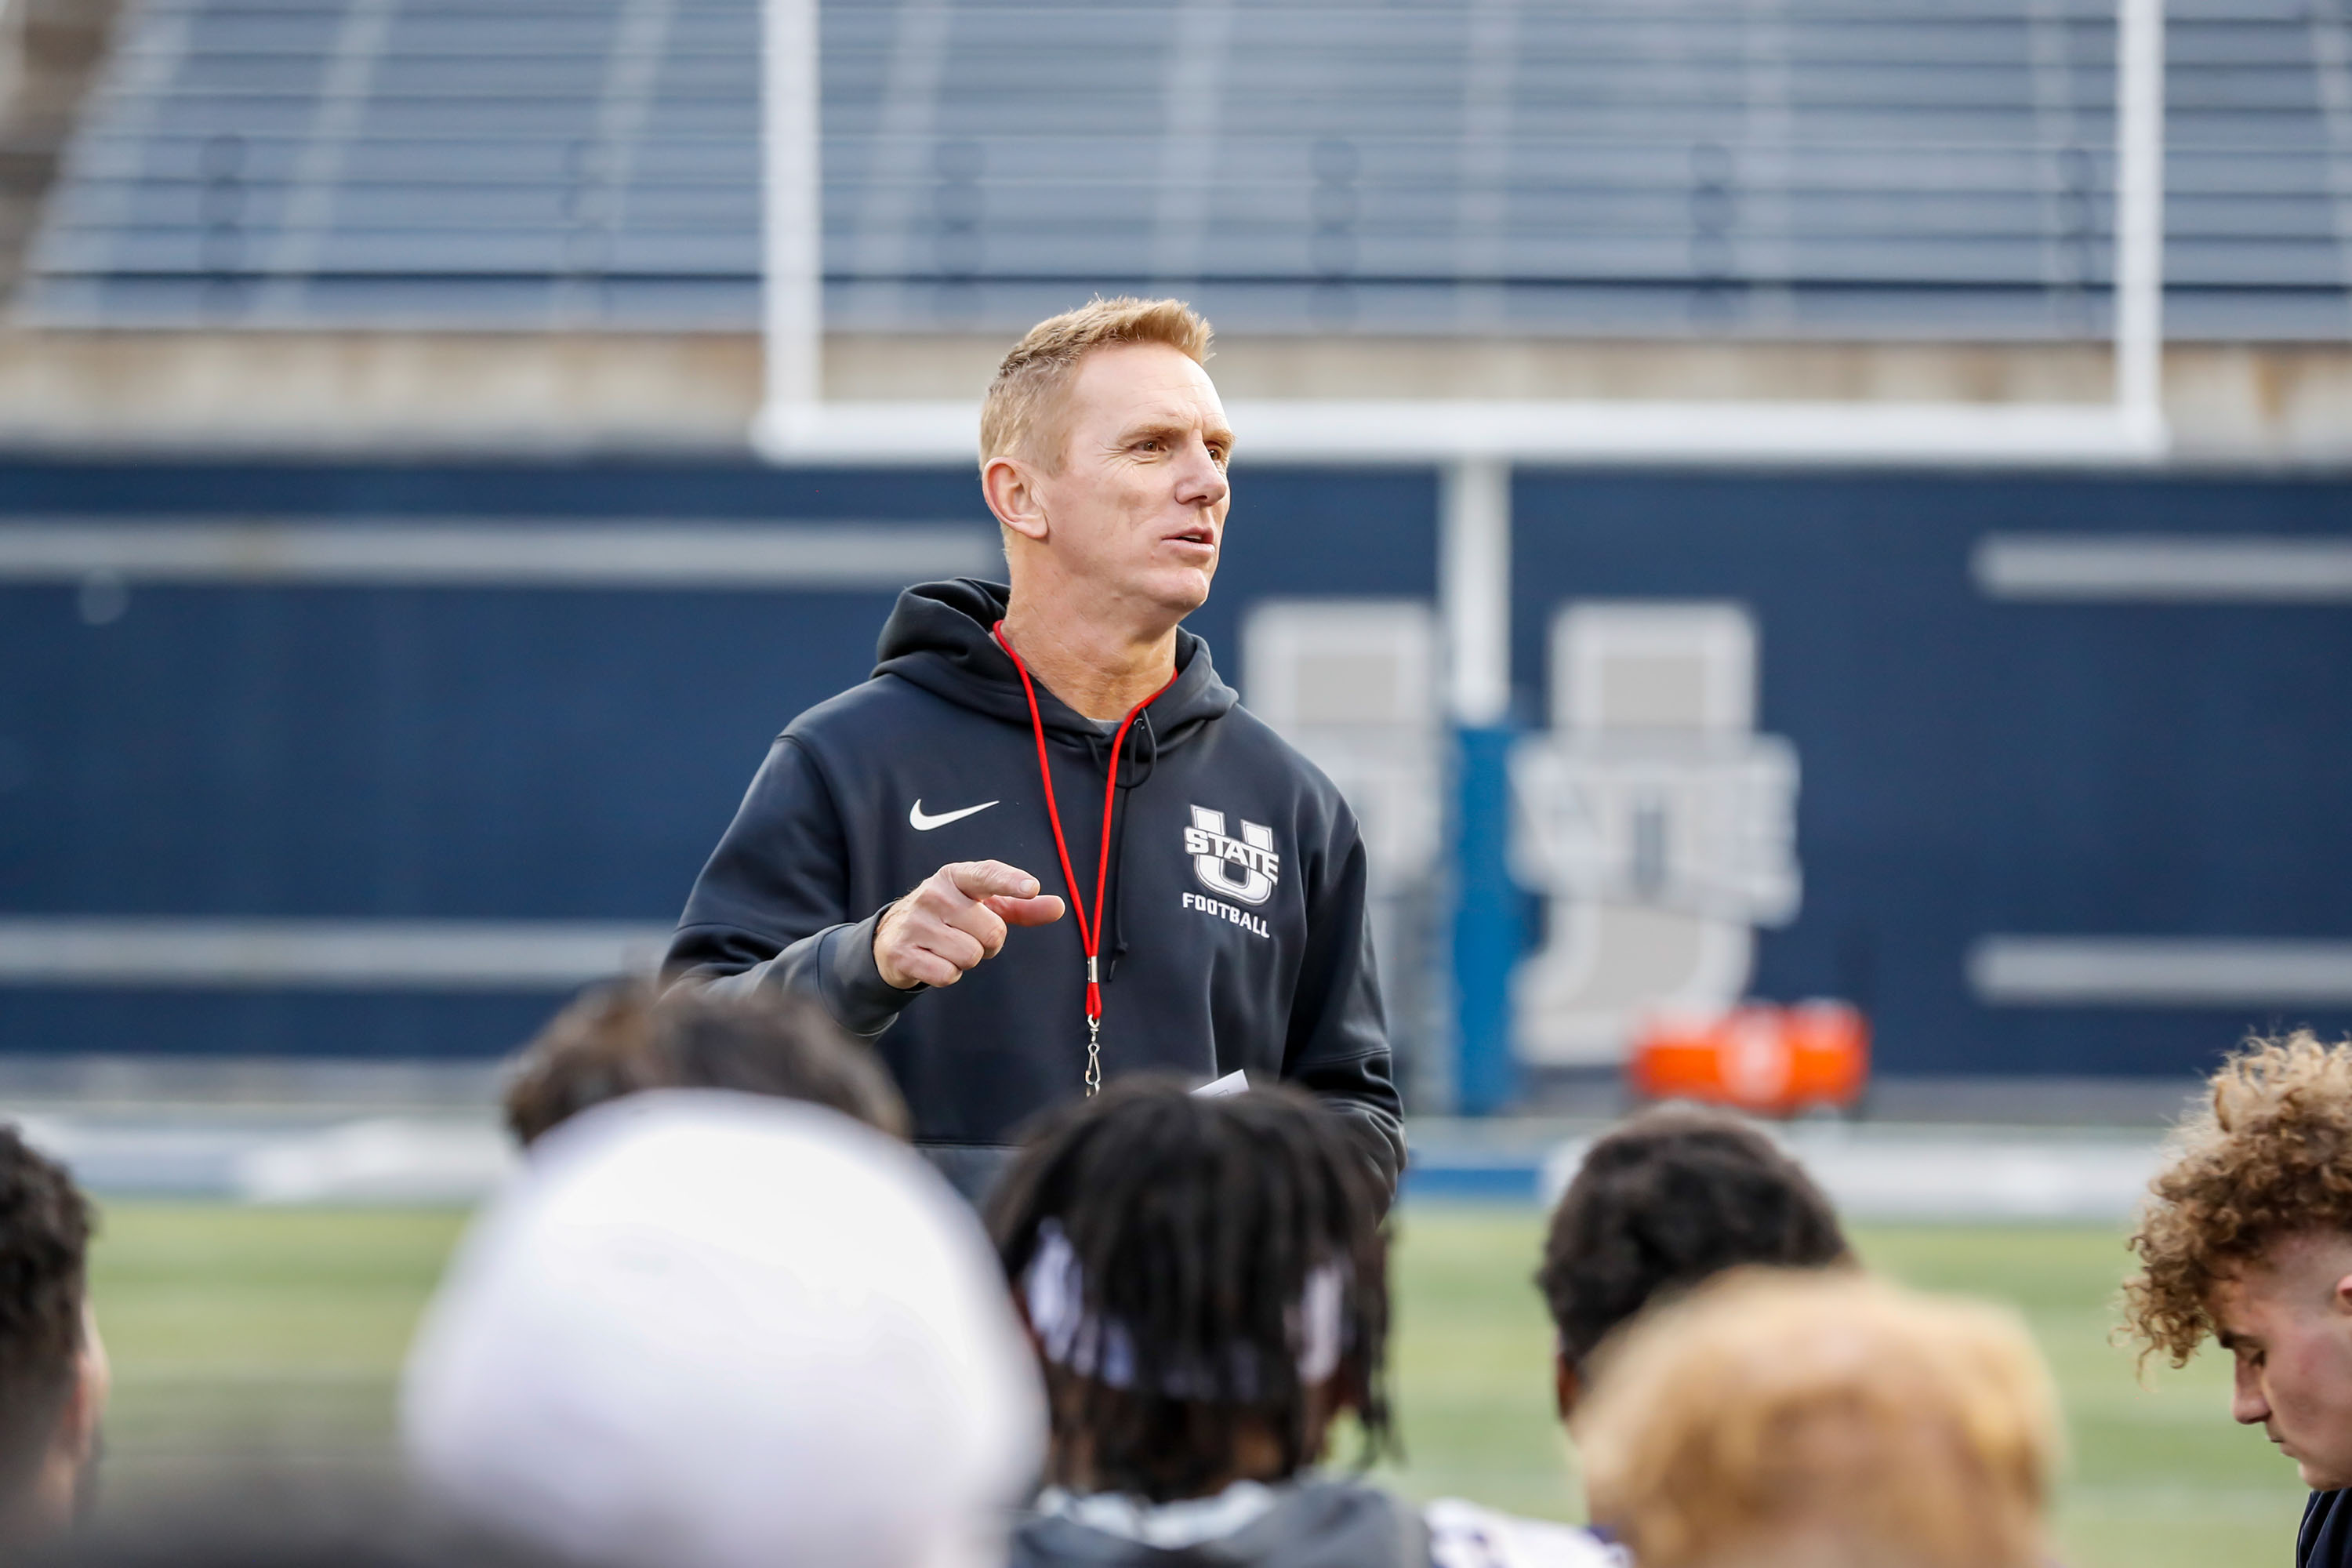 Utah State football coach Blake Anderson addresses his team at the end of a spring practice in April 2021.